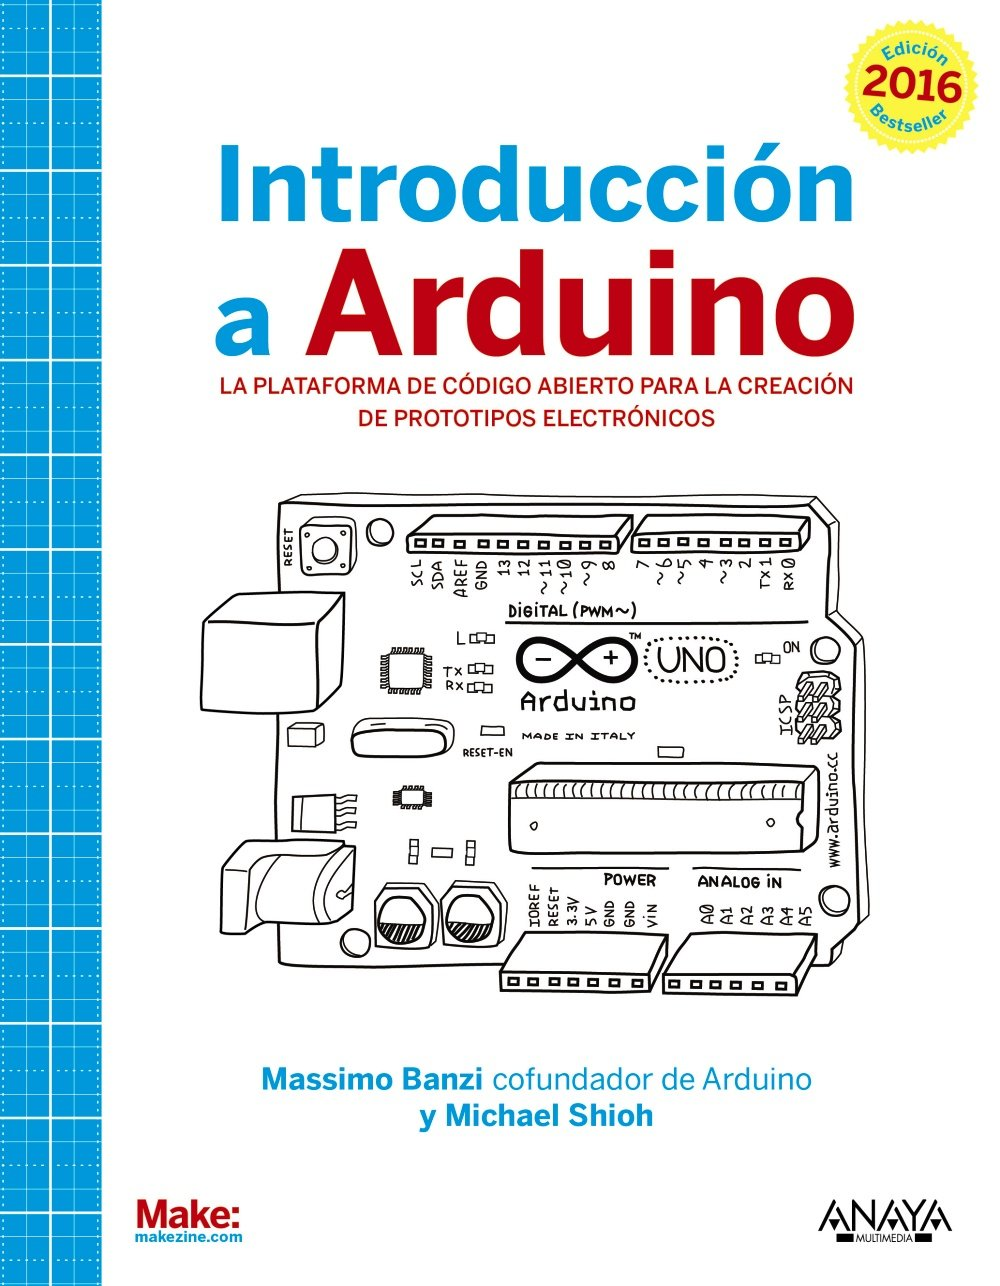 Introducción a Arduino (Spanish) Paperback – September 1, 2015